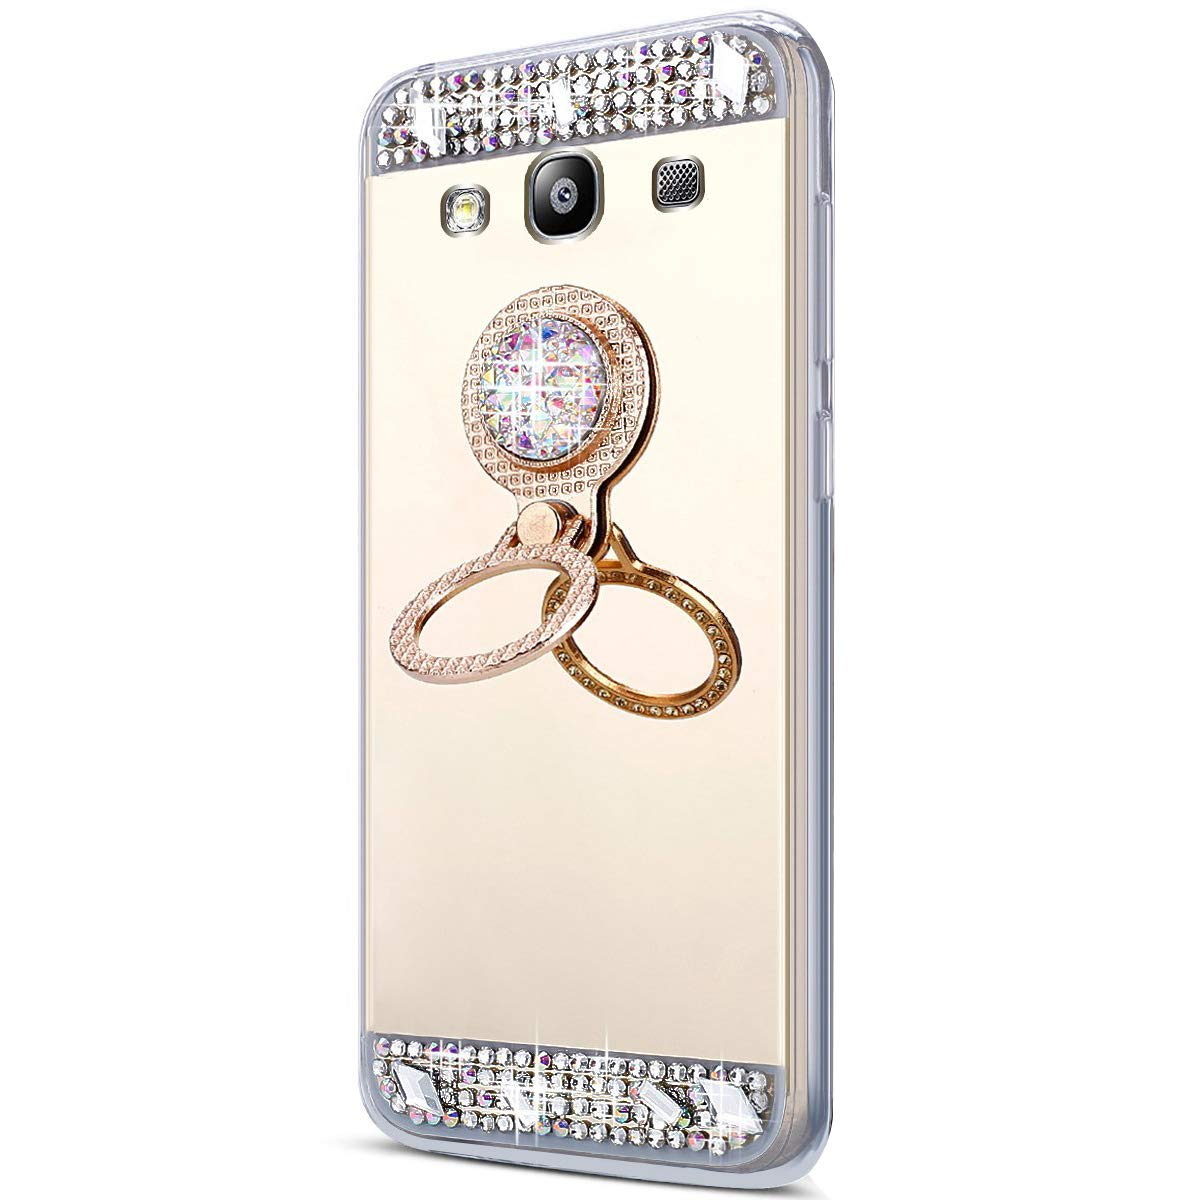 SainCat Coque Galaxy S3, Ultra Slim Silicone Paillette Glitter Ours Strass Antichoc Ultra Resistante Support Anneau Miroir Coque pour Samsung Galaxy S3-Argent